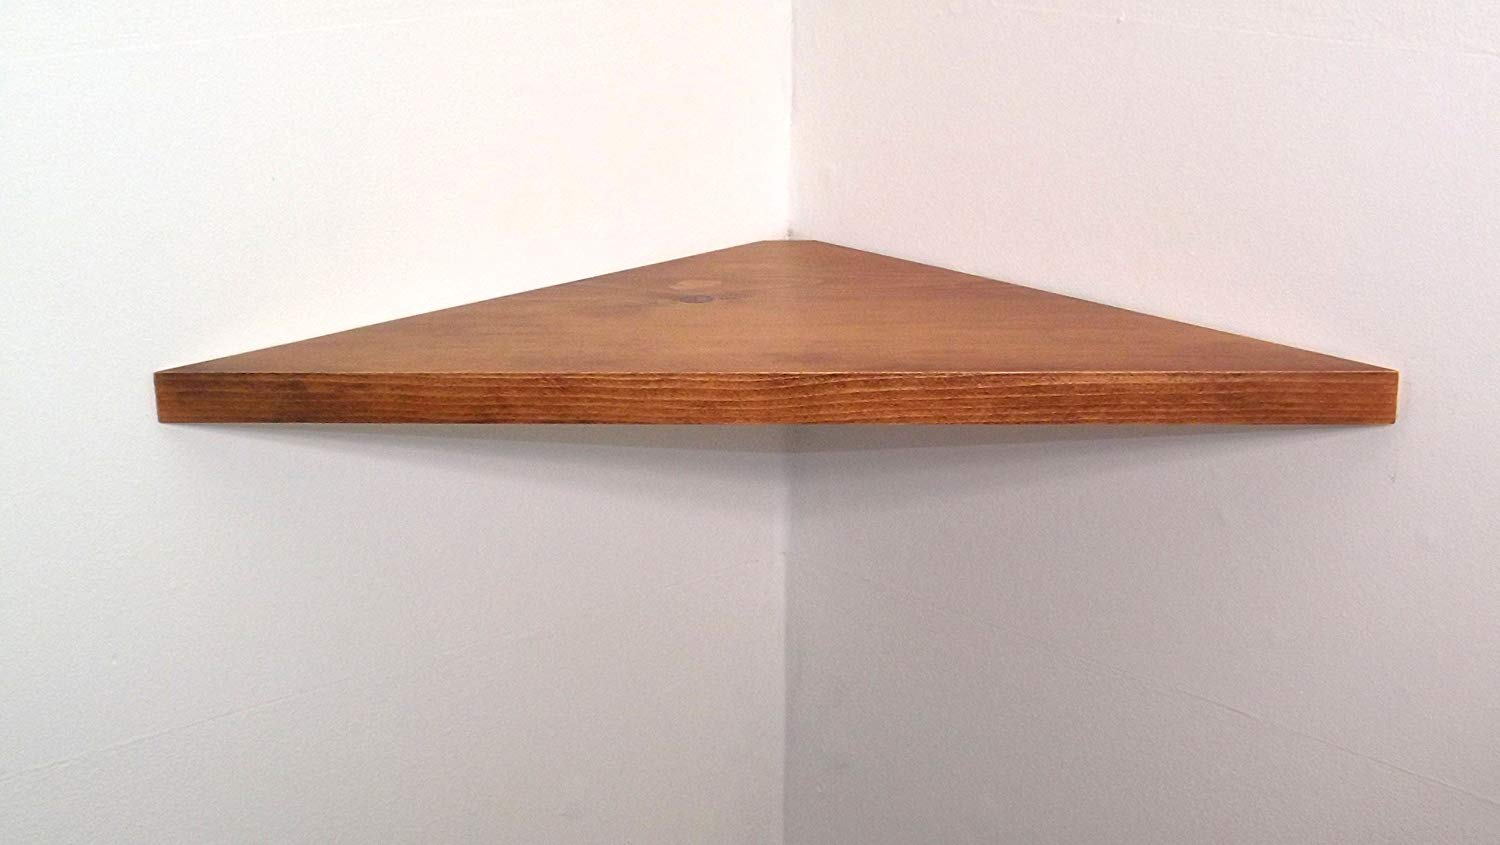 inch wide set solid wood floating corner wall shelf shelves with american walnut stain choose polyurethane finish handmade usa reclaimed fireplace surround bookshelf unit dish